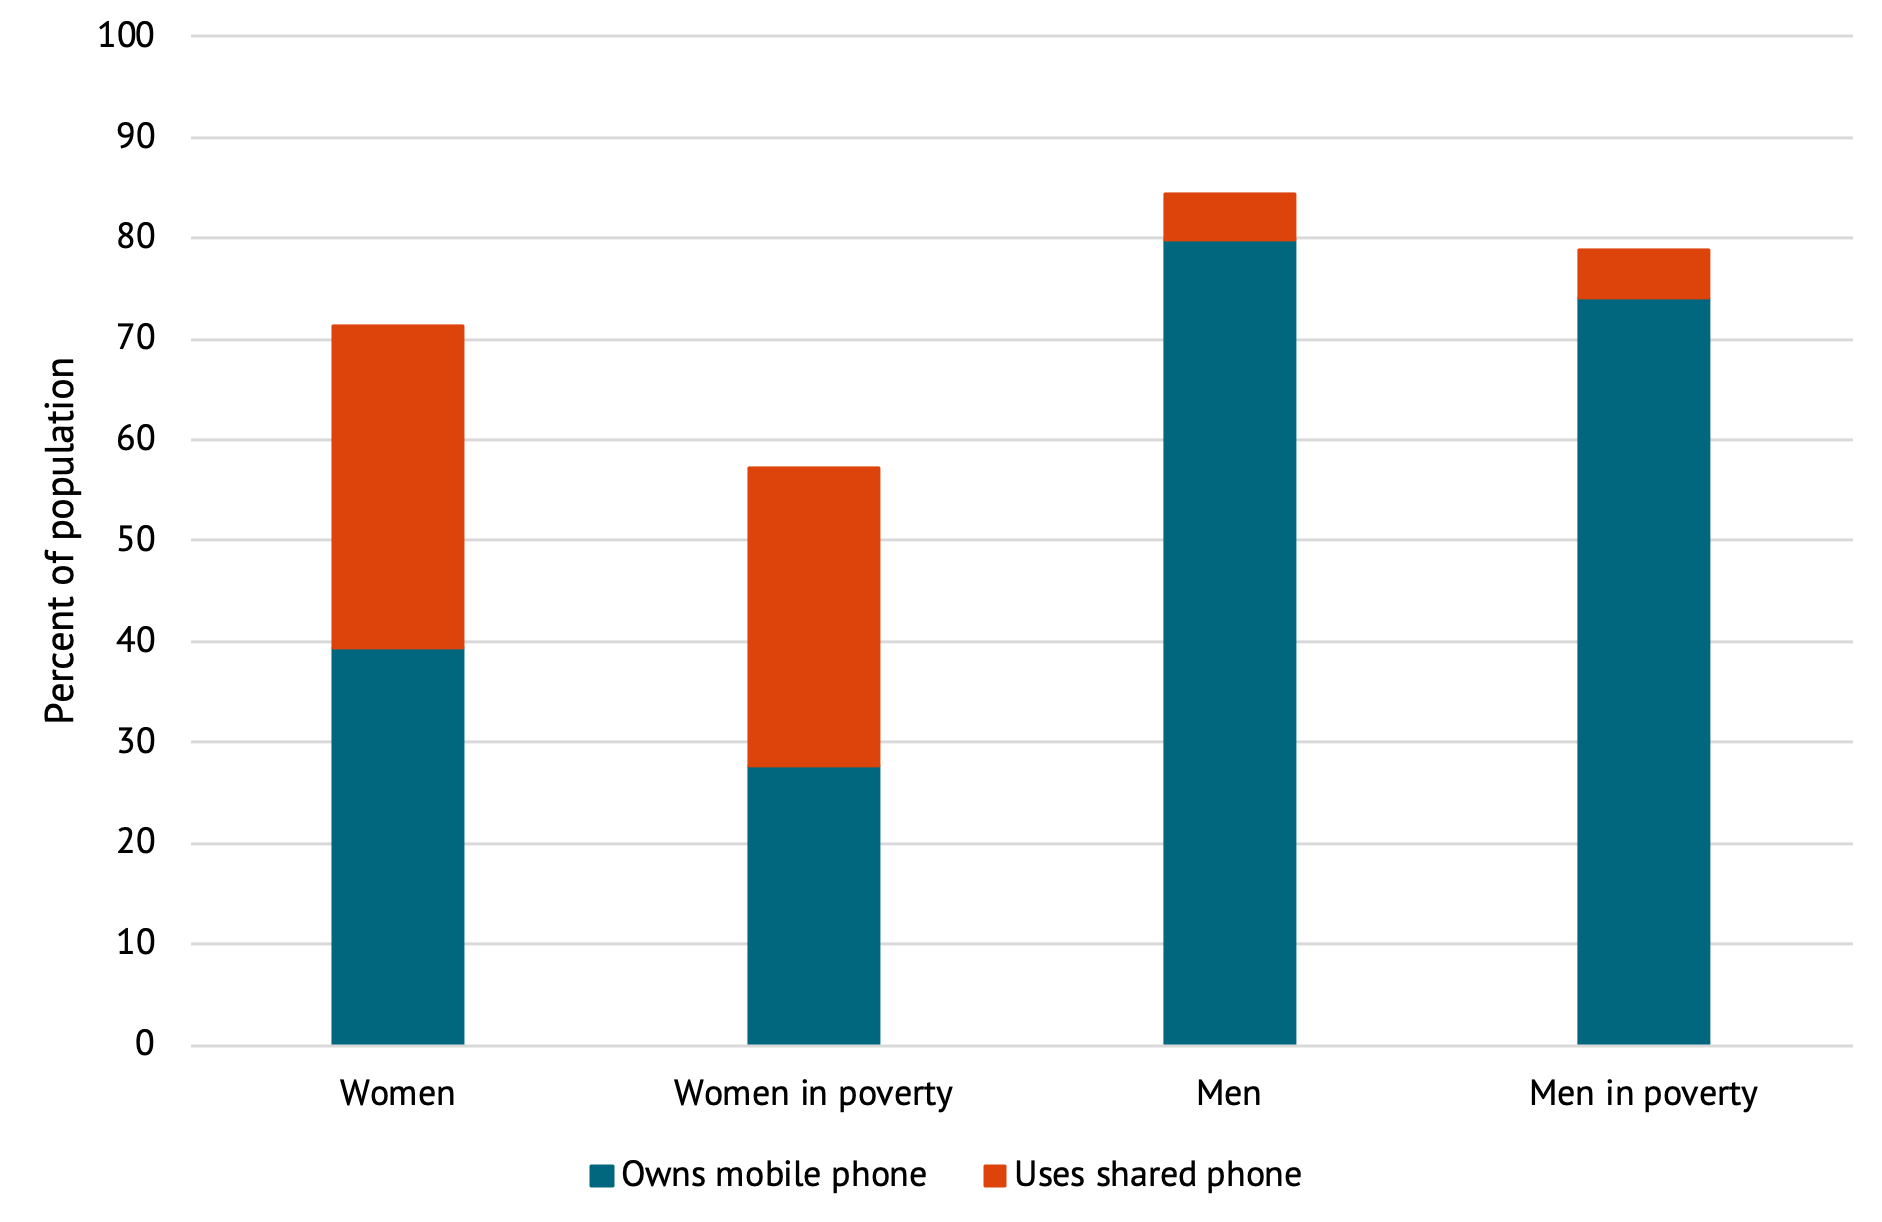 A graph showing the percent of women and men with access to a phone